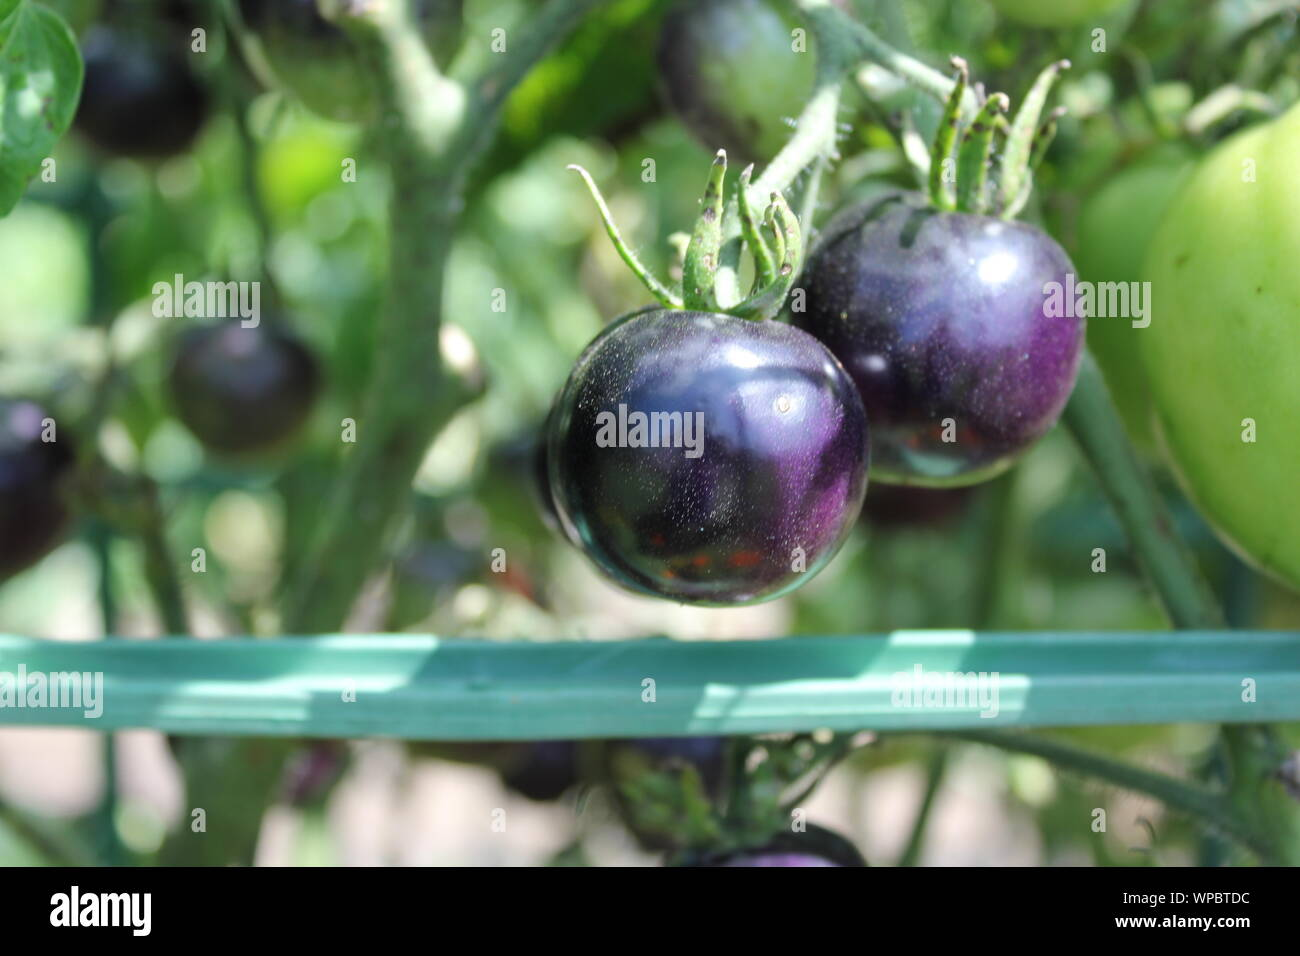 Farm fresh purple cherry tomatoes growing at the local community garden. Stock Photo